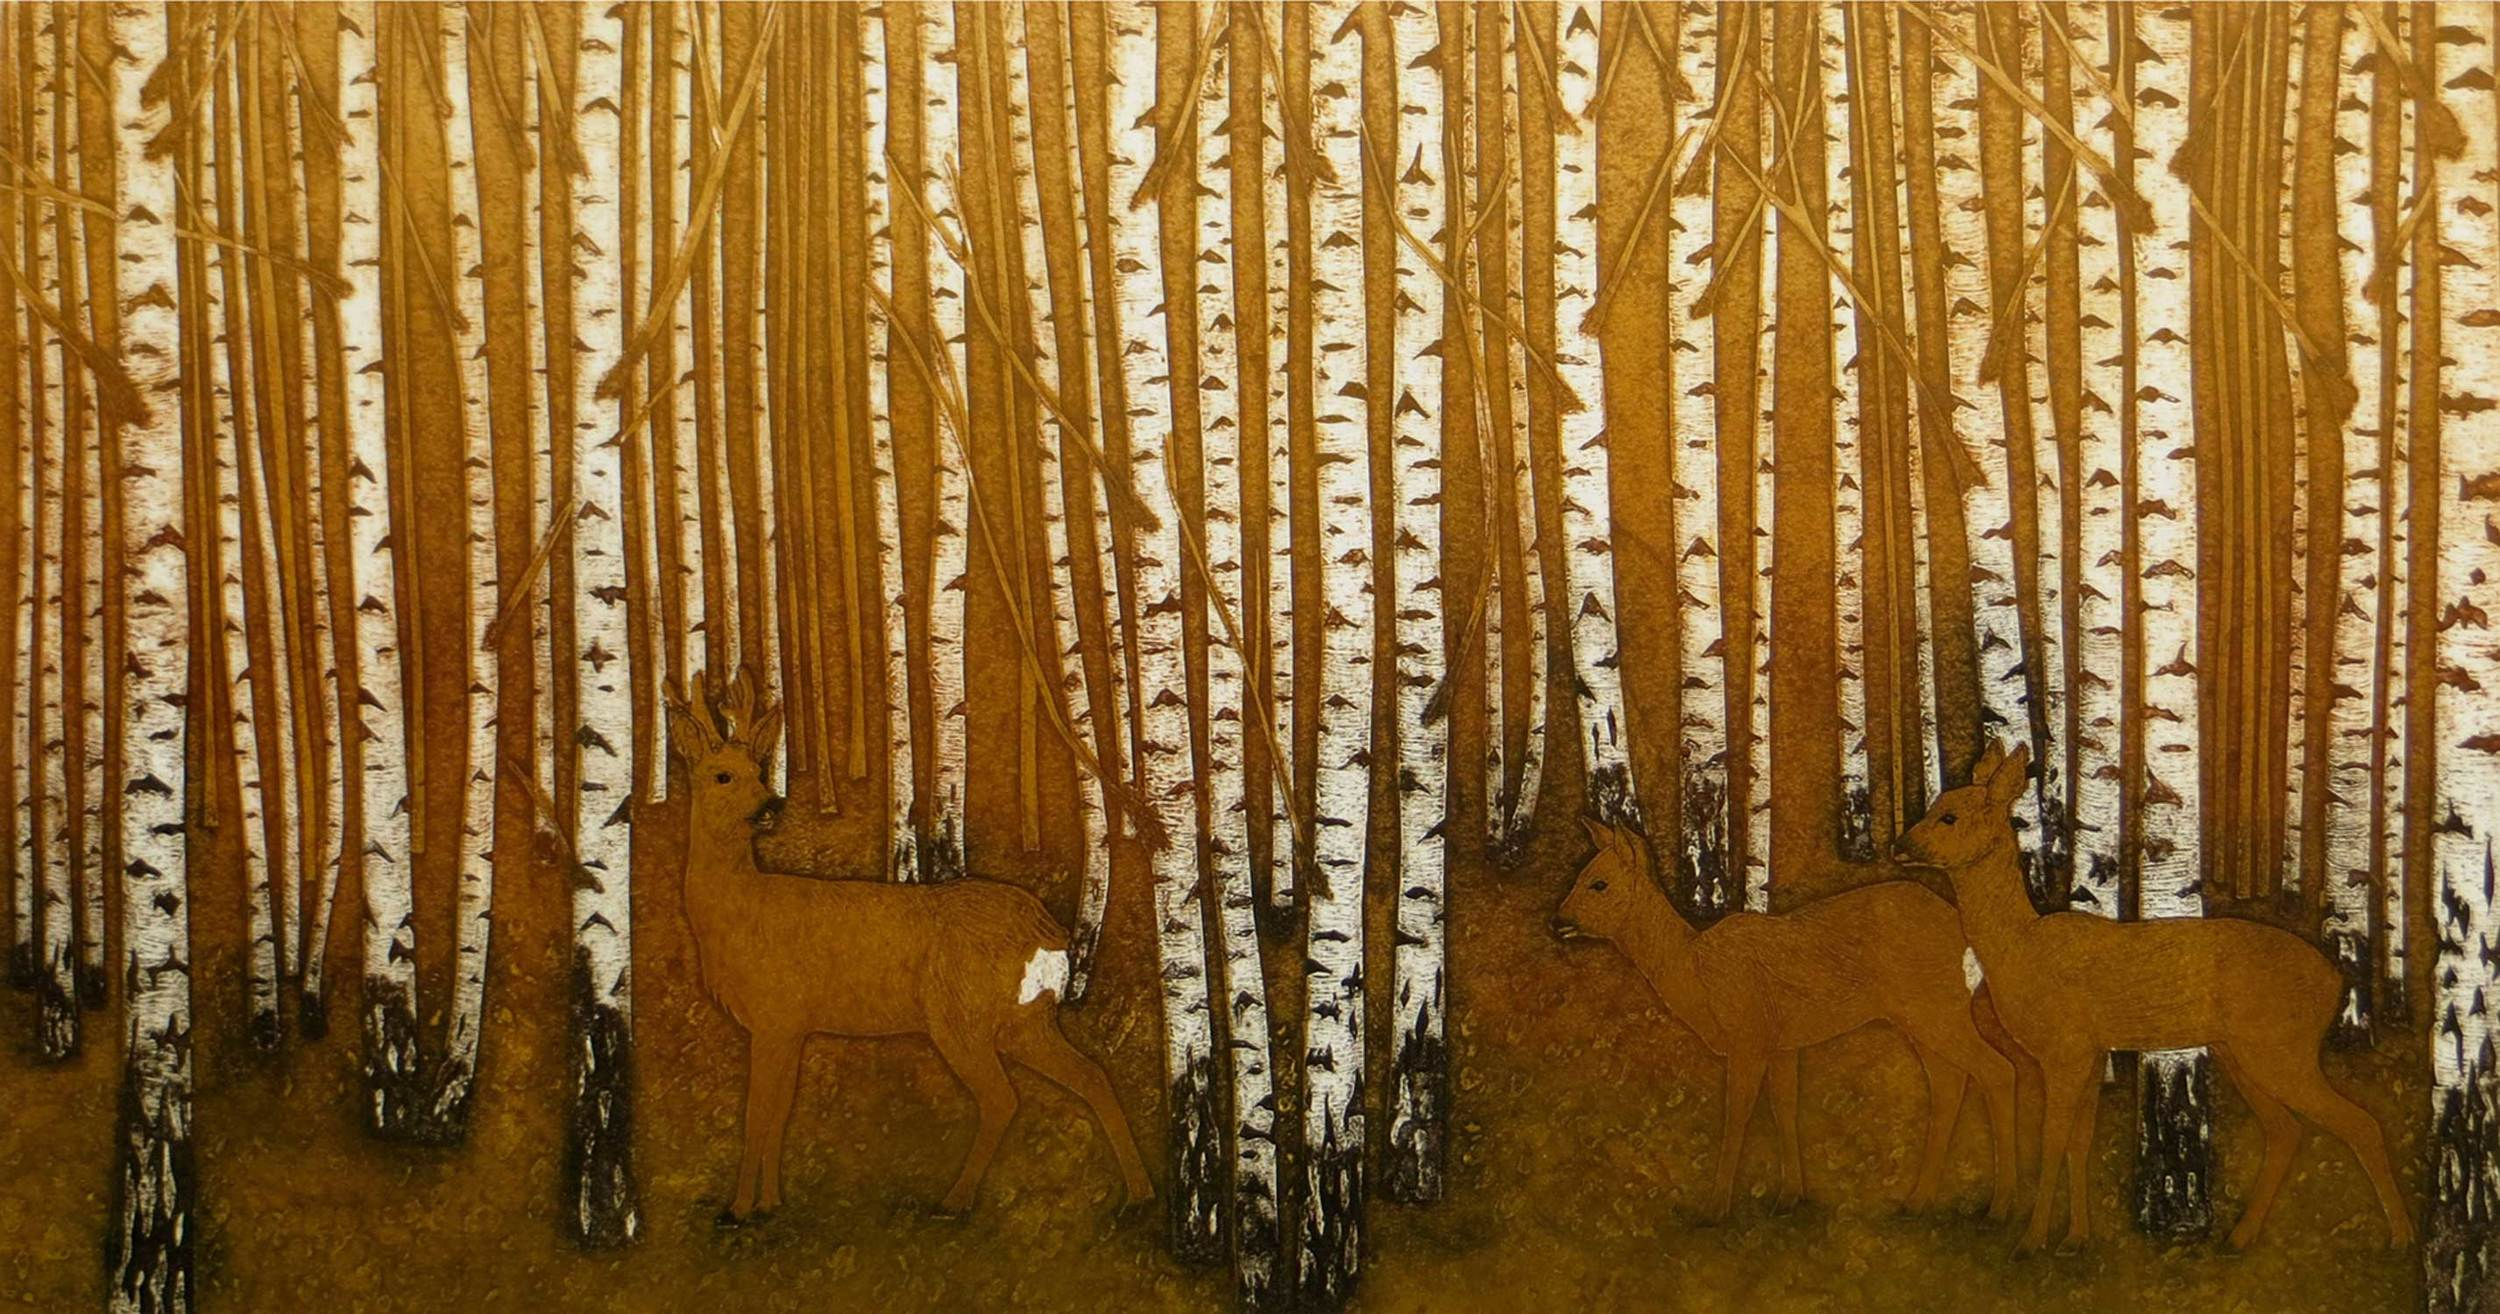 Passing Through   collagraph   29 x 56 cm  £235 (unframed)